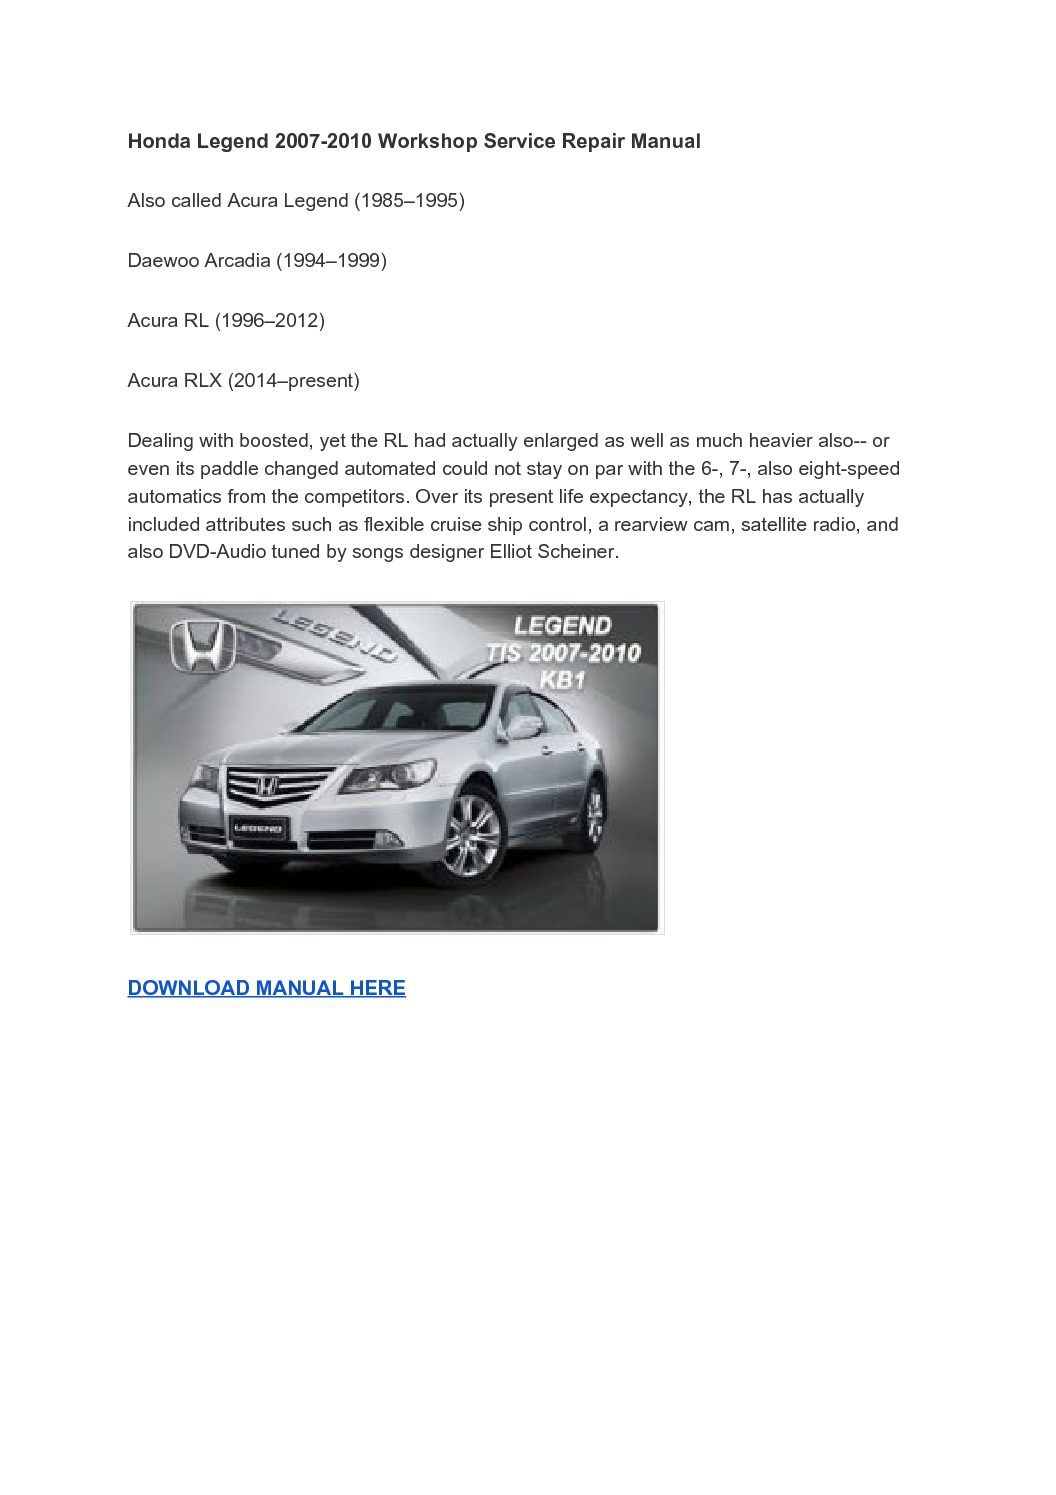 auto mechanic honda legend insight 2007 2010 workshop service rh pinterest com Club Car Service Manual PDF 1988 columbia par car service manual